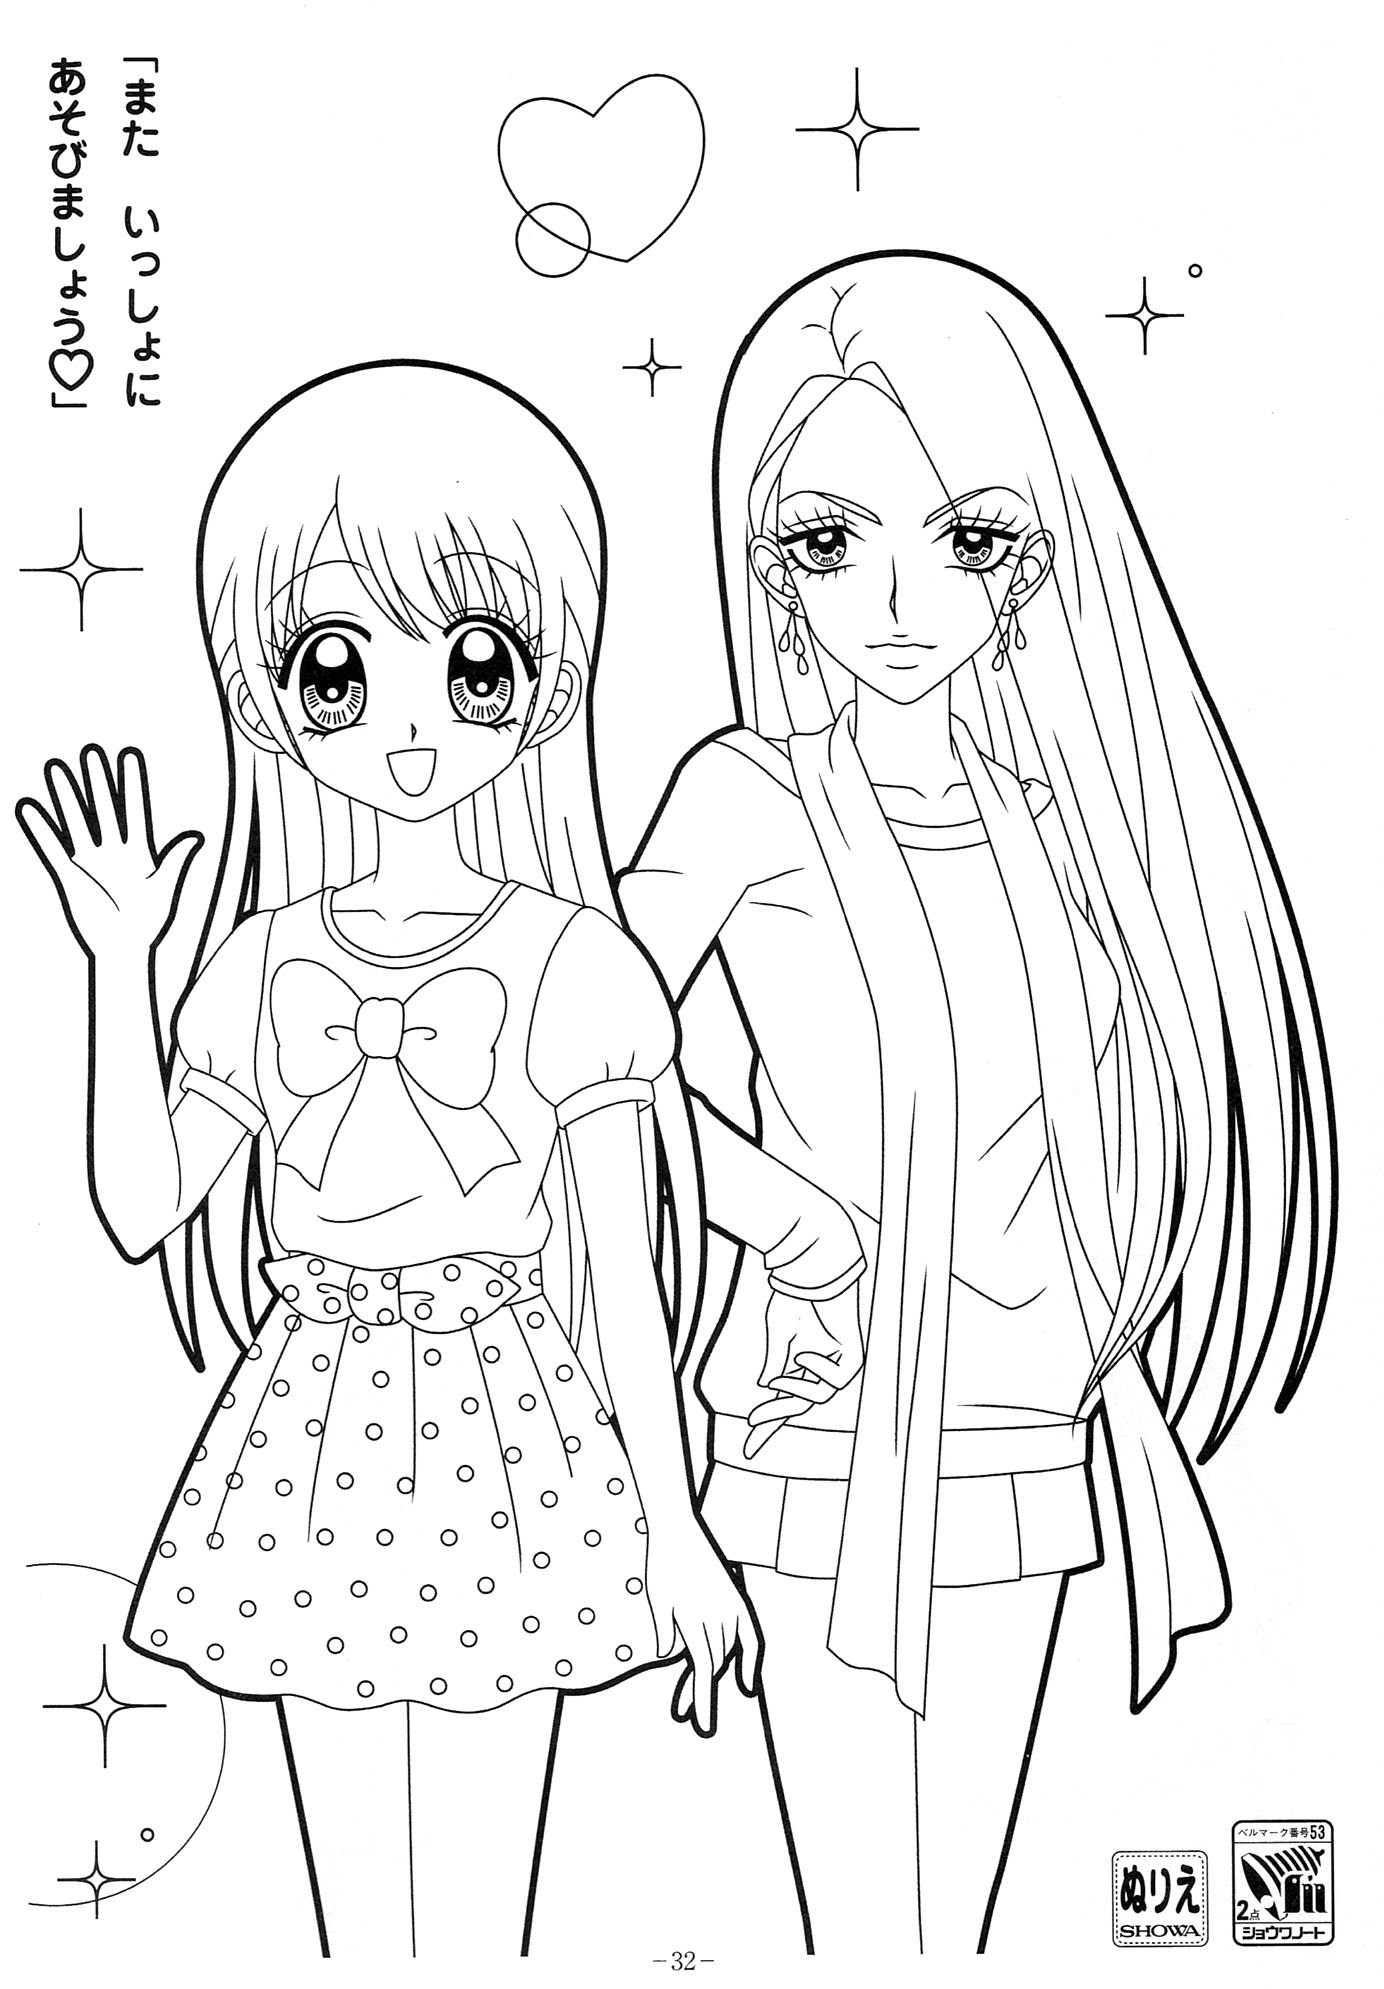 Coloring book - Mechamote Lincho | Print&Coloring | Pinterest | Anime